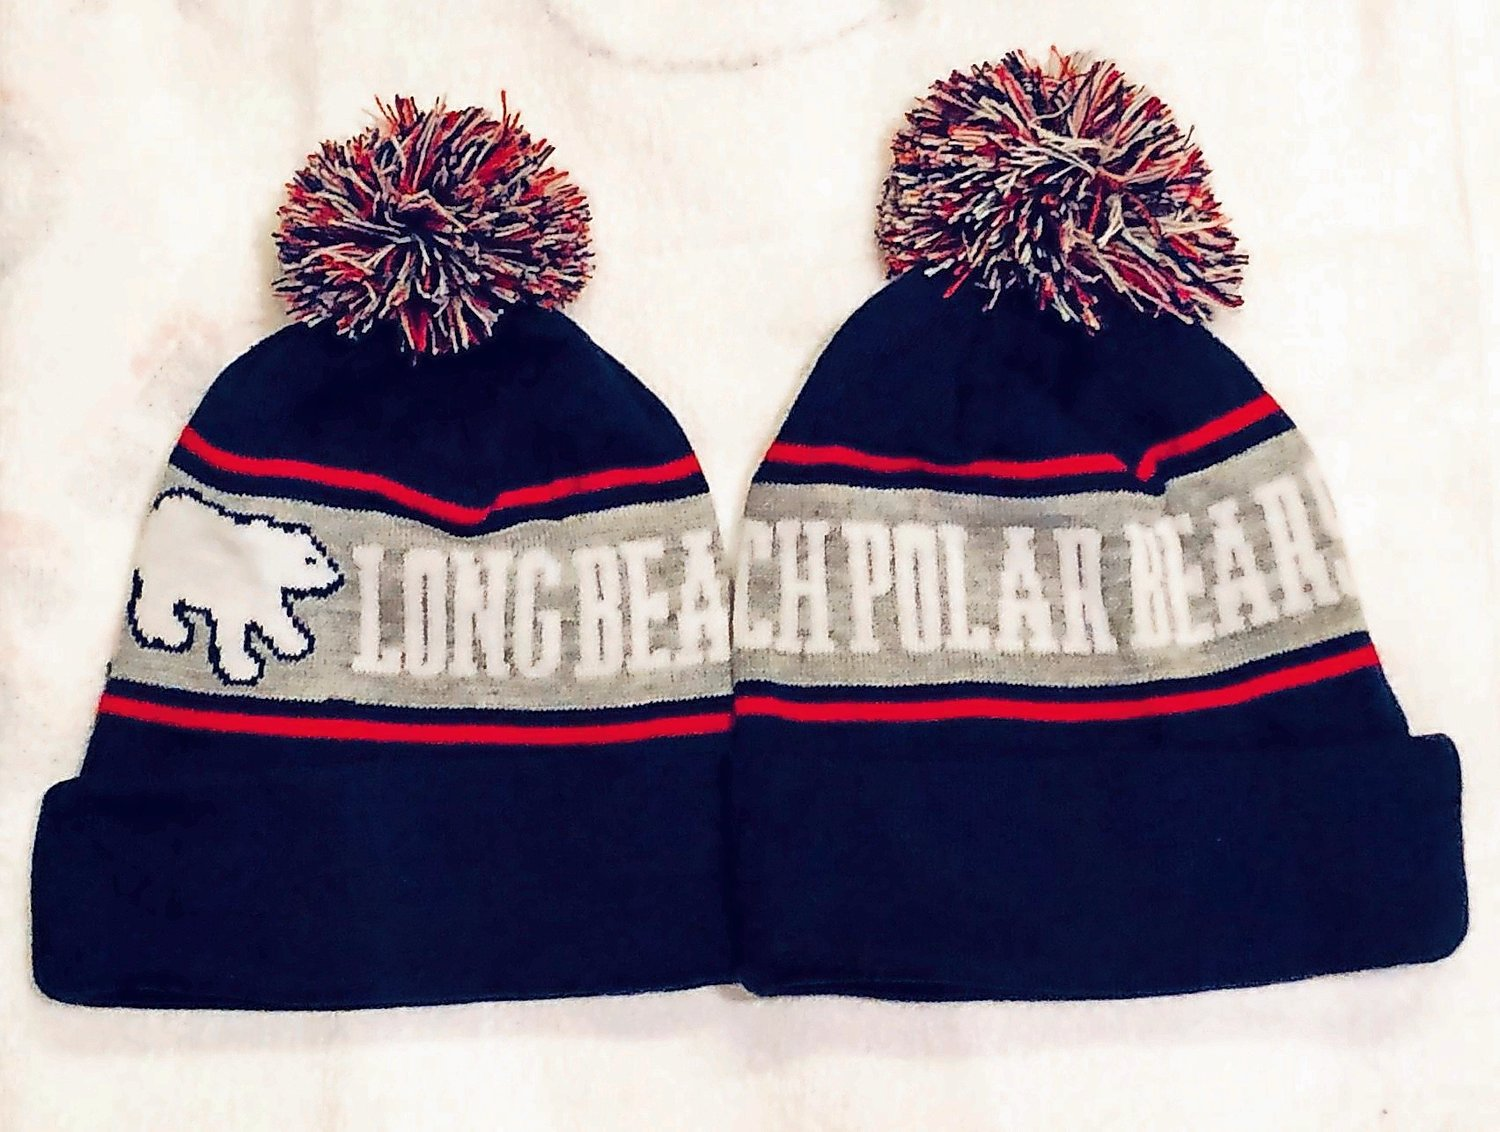 Stay warm in these Polar Bear knit hats.